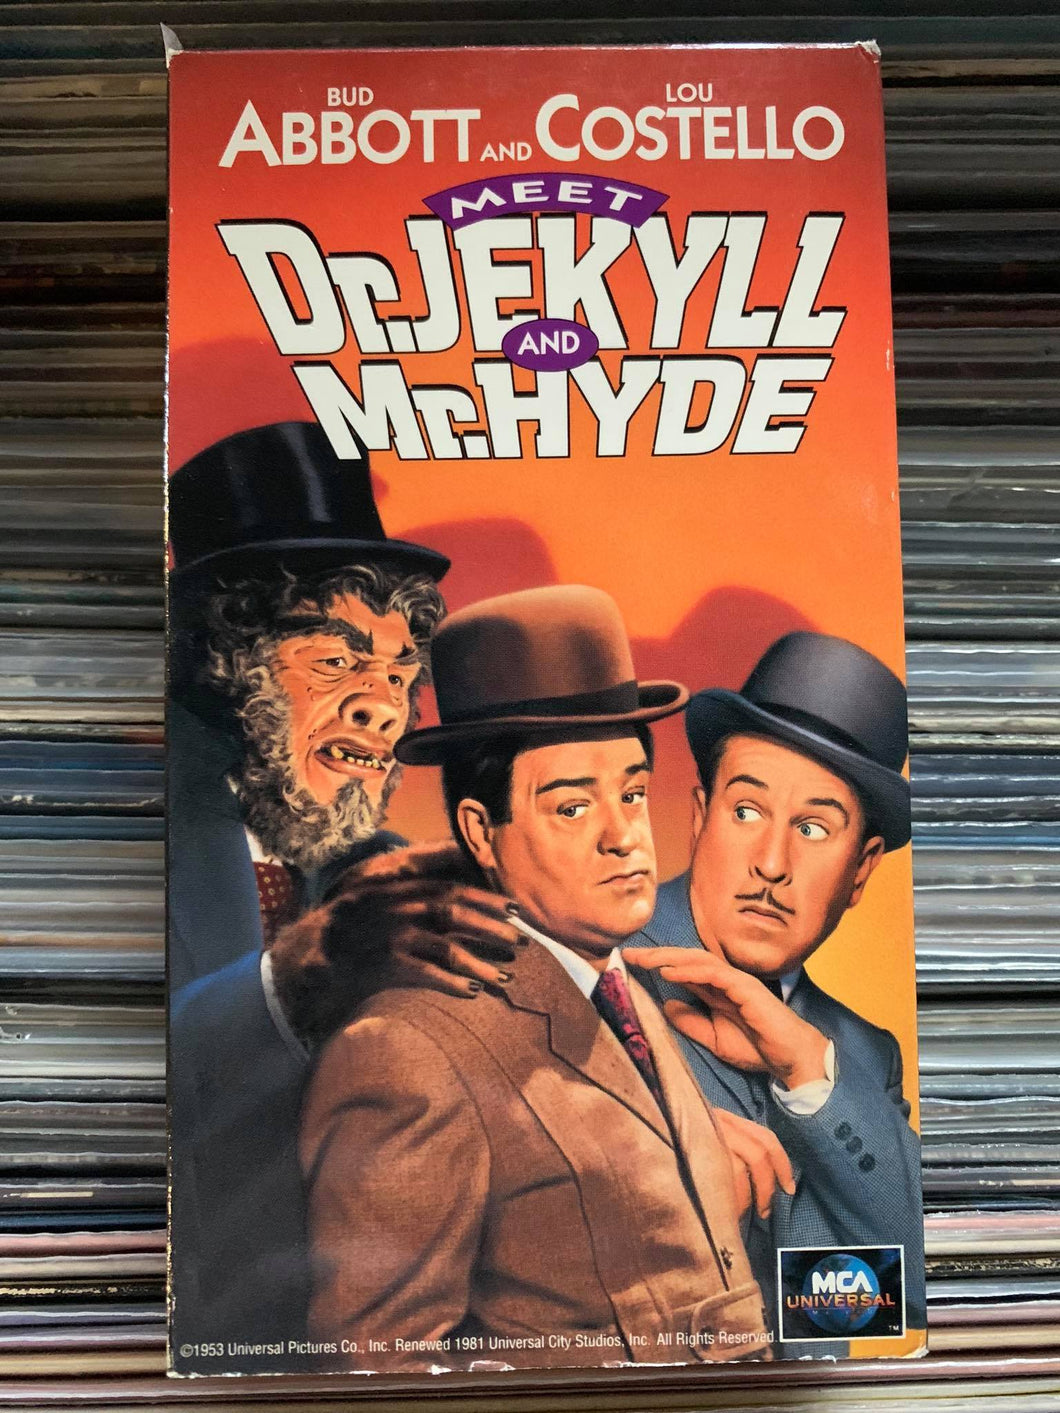 Dr Jekyll and Mr. Hyde (Abbott and Costello) VHS